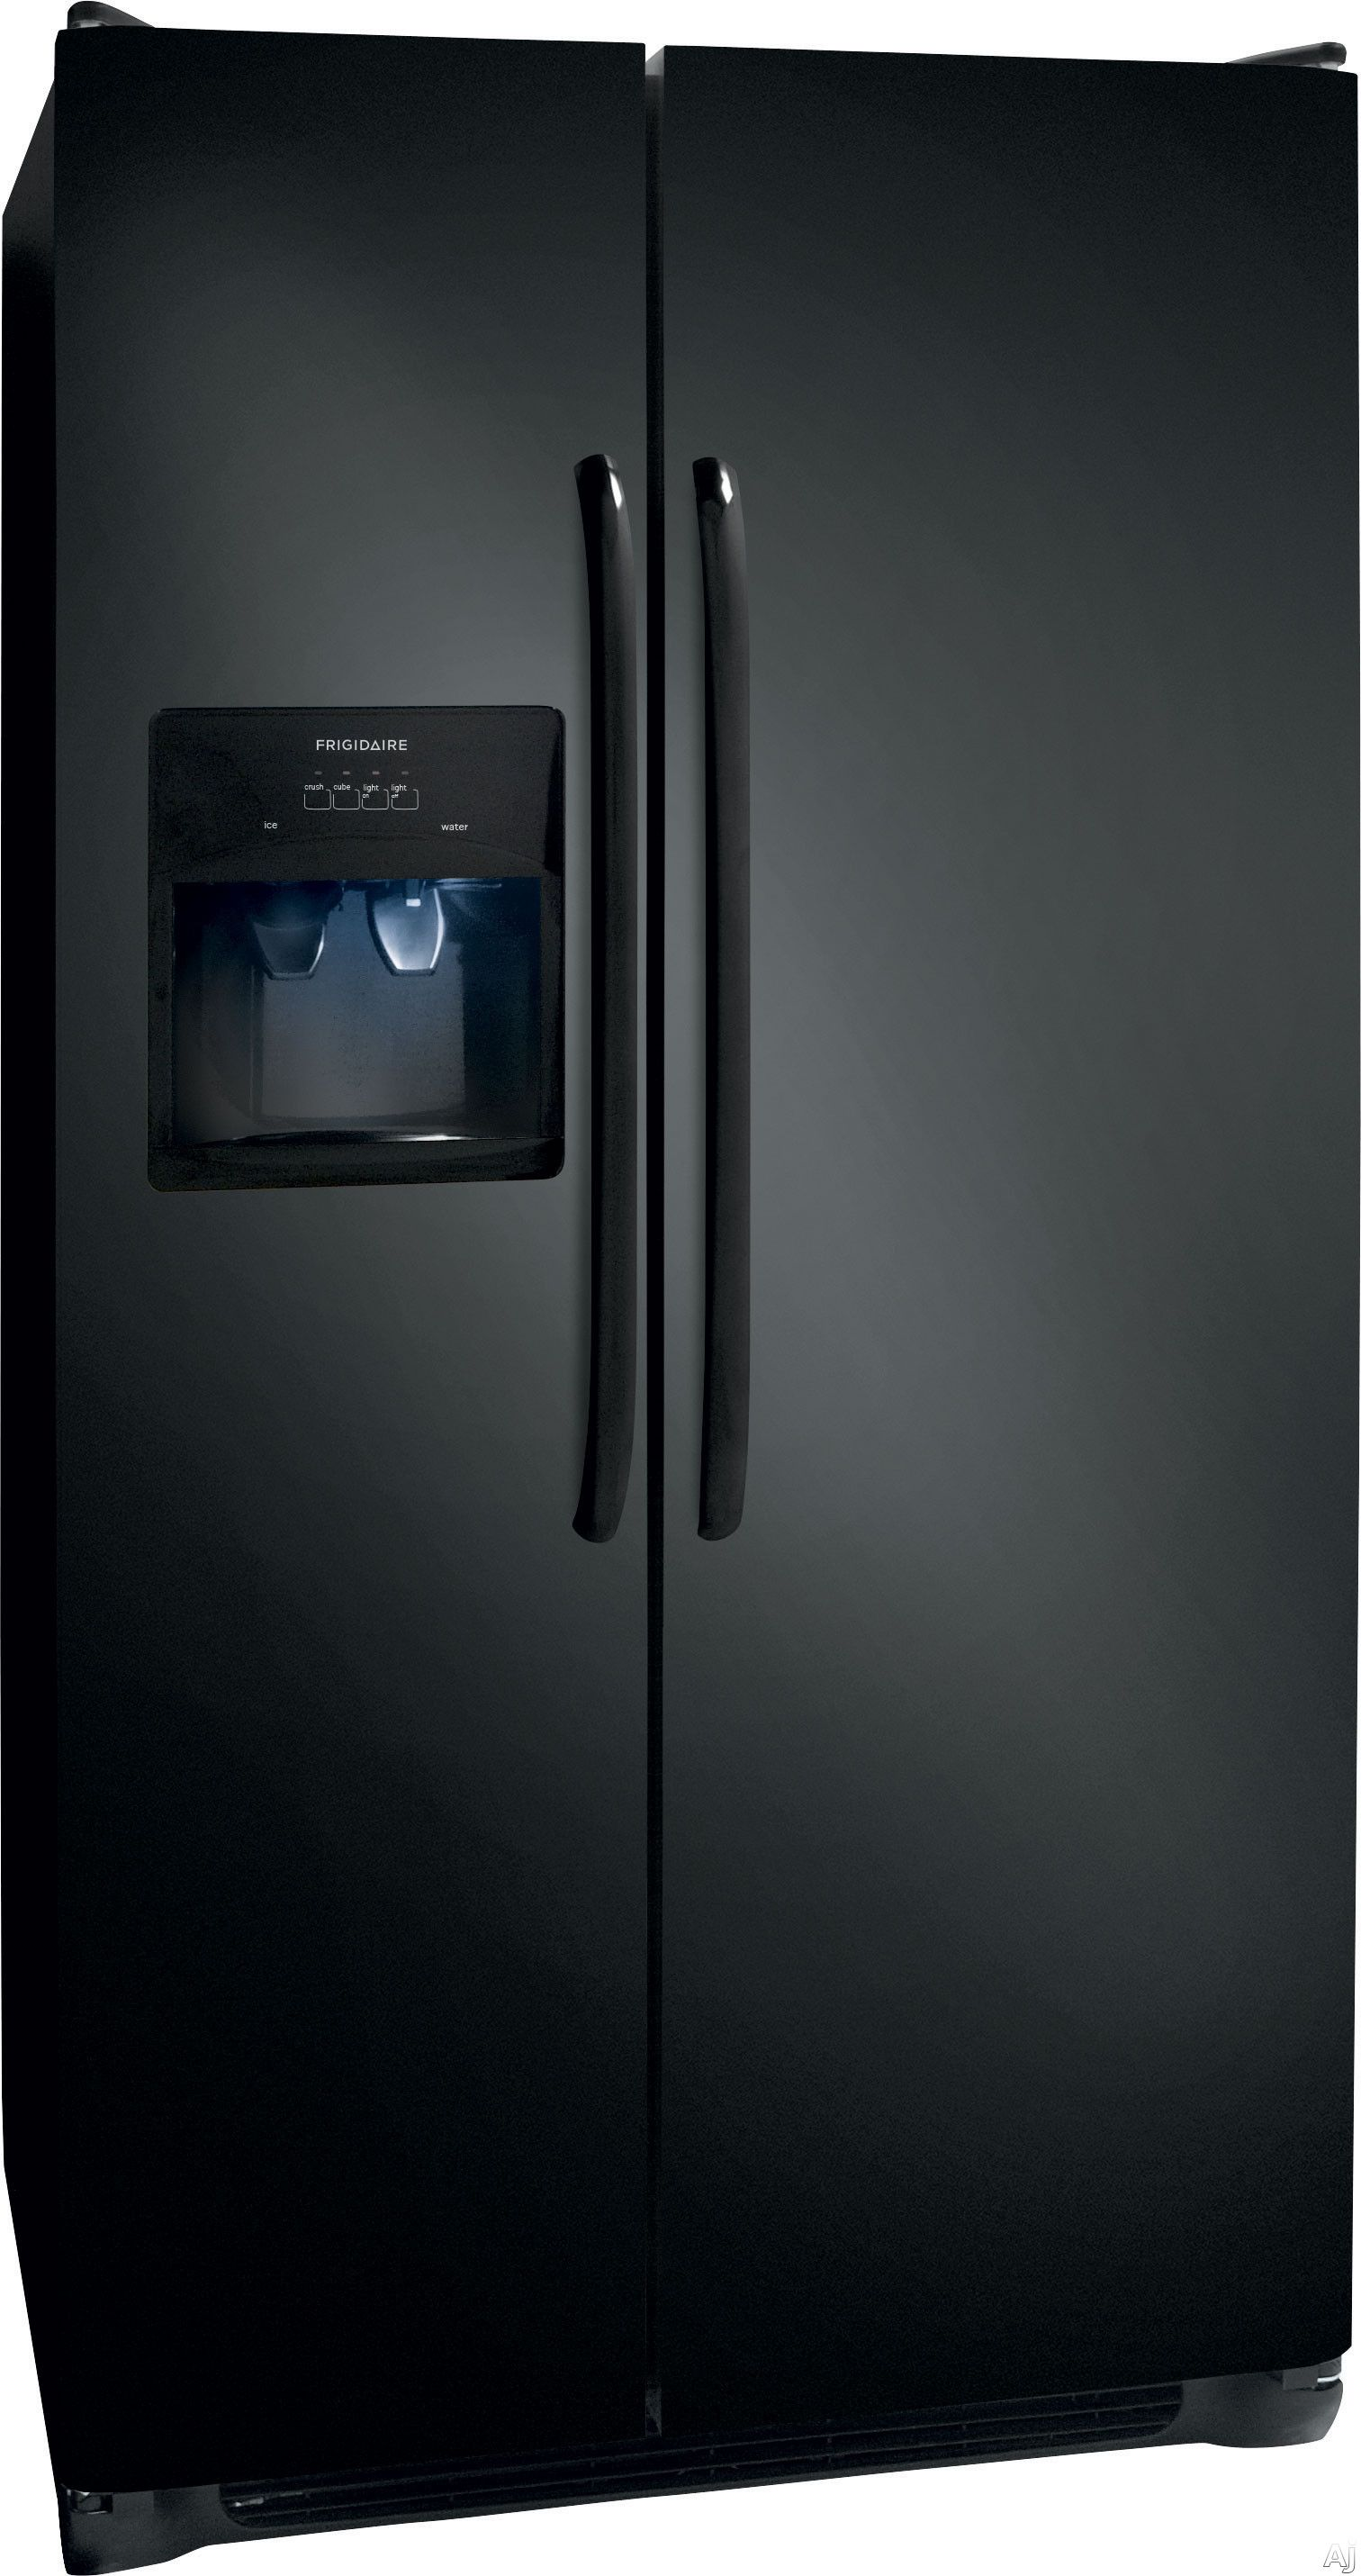 Frigidaire ffssqe cu ft side by side refrigerator with